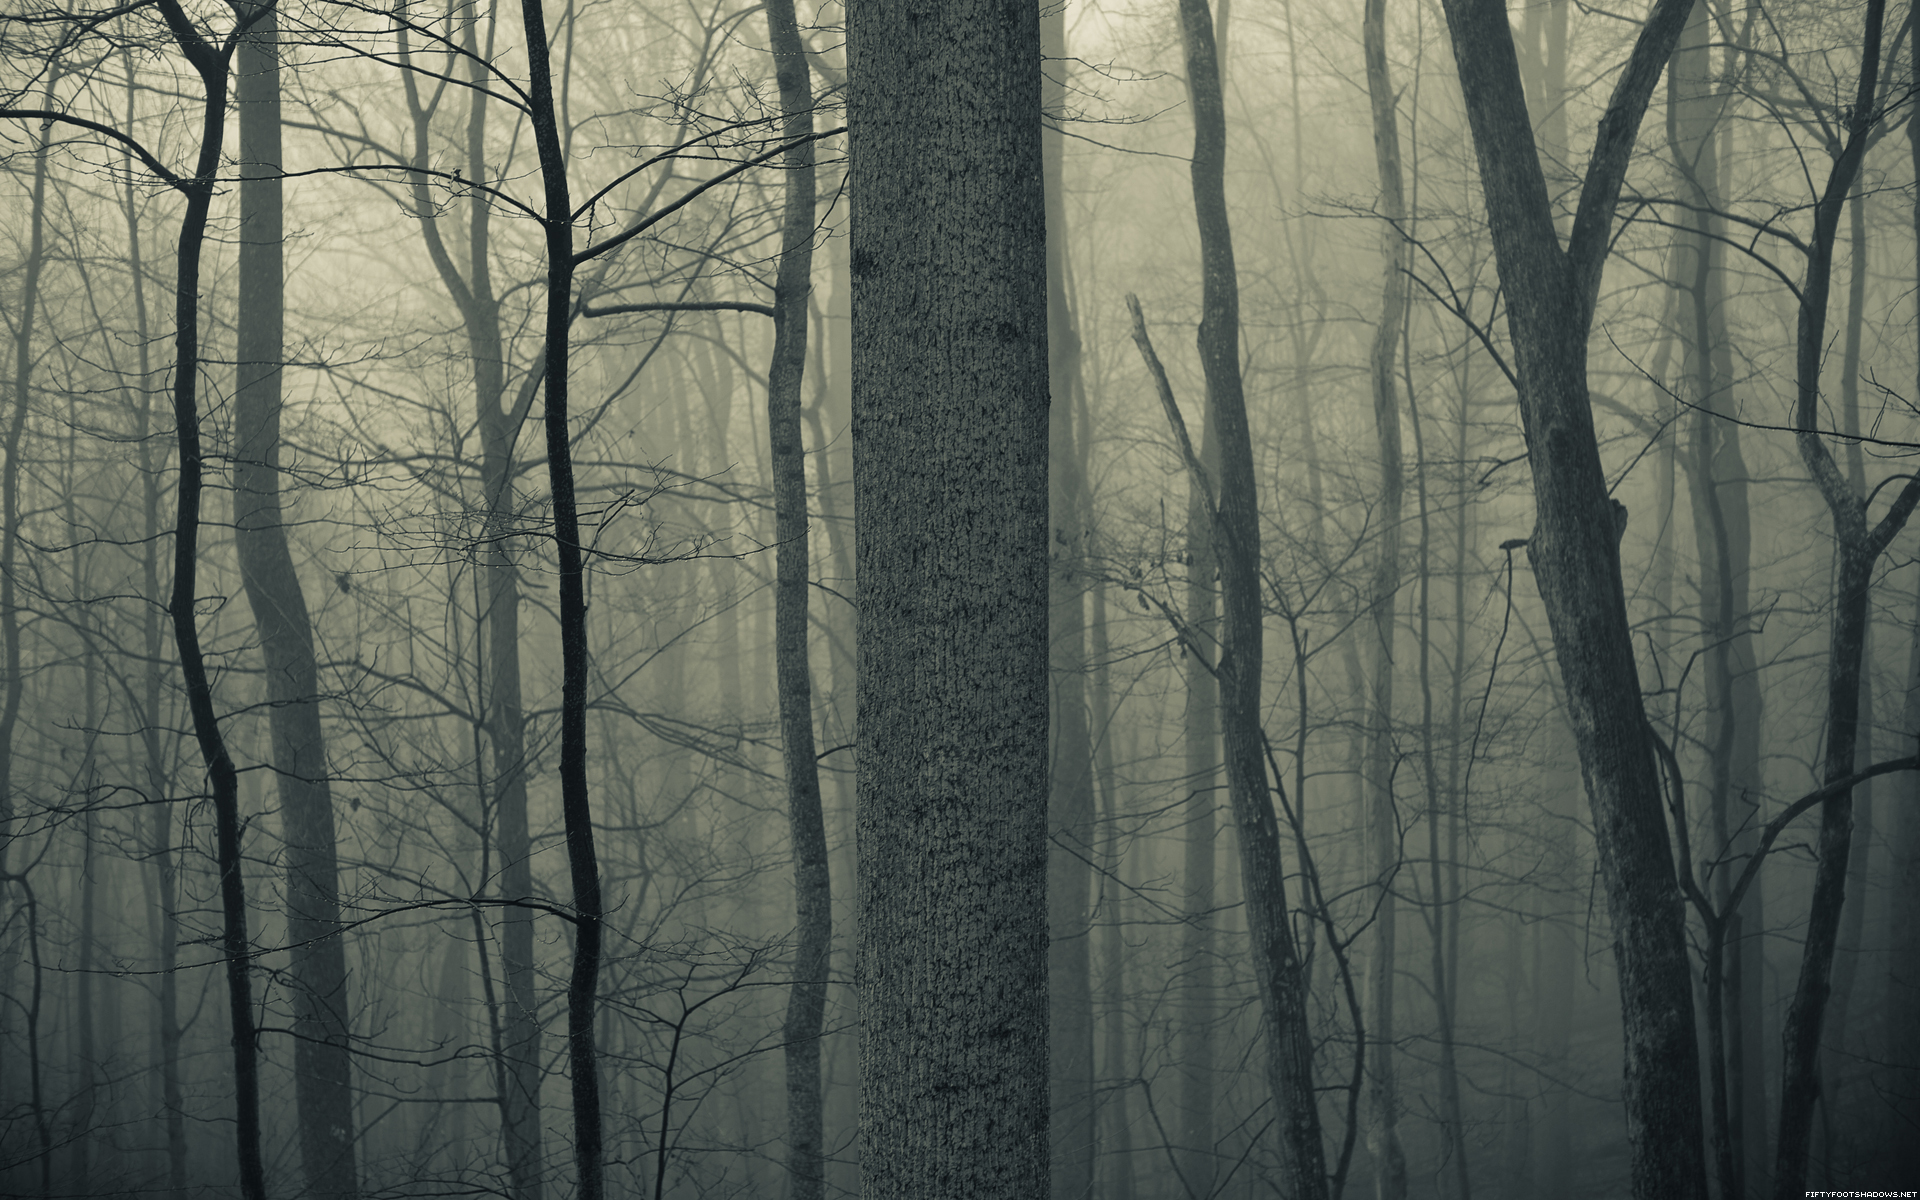 Nature Trees Forests Woods Trunk Haze Fog Mist Dark Bark Spooky Creepy Autumn Fall Seasons Wallpaper